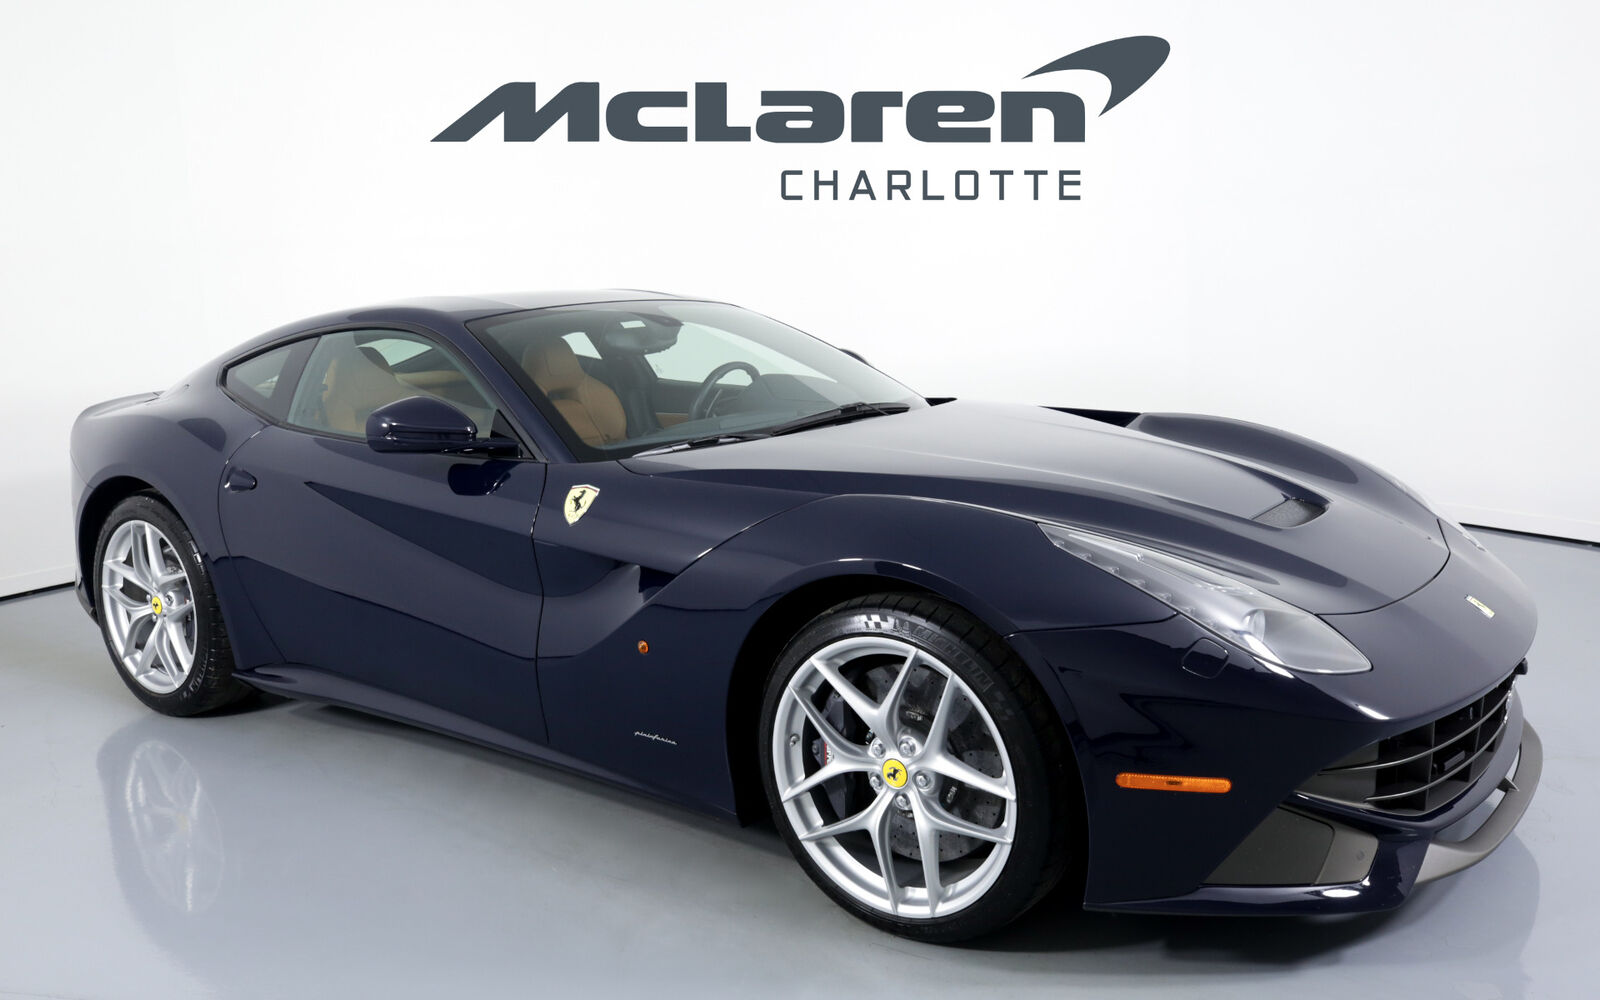 2014 Ferrari F12 Berlinetta For Sale $229,746 - 2206674